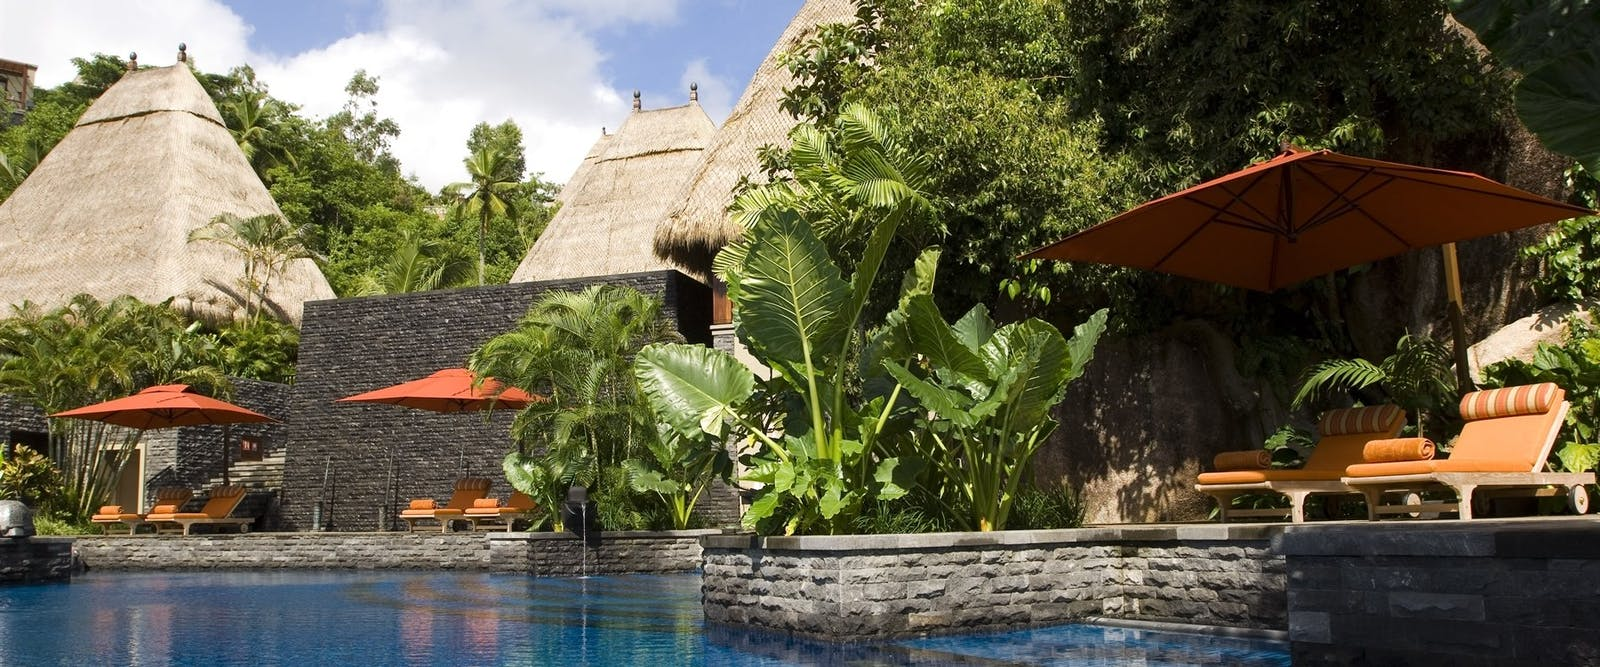 Main Swimming Pool at Maia Luxury Resort & Spa, Seychelles